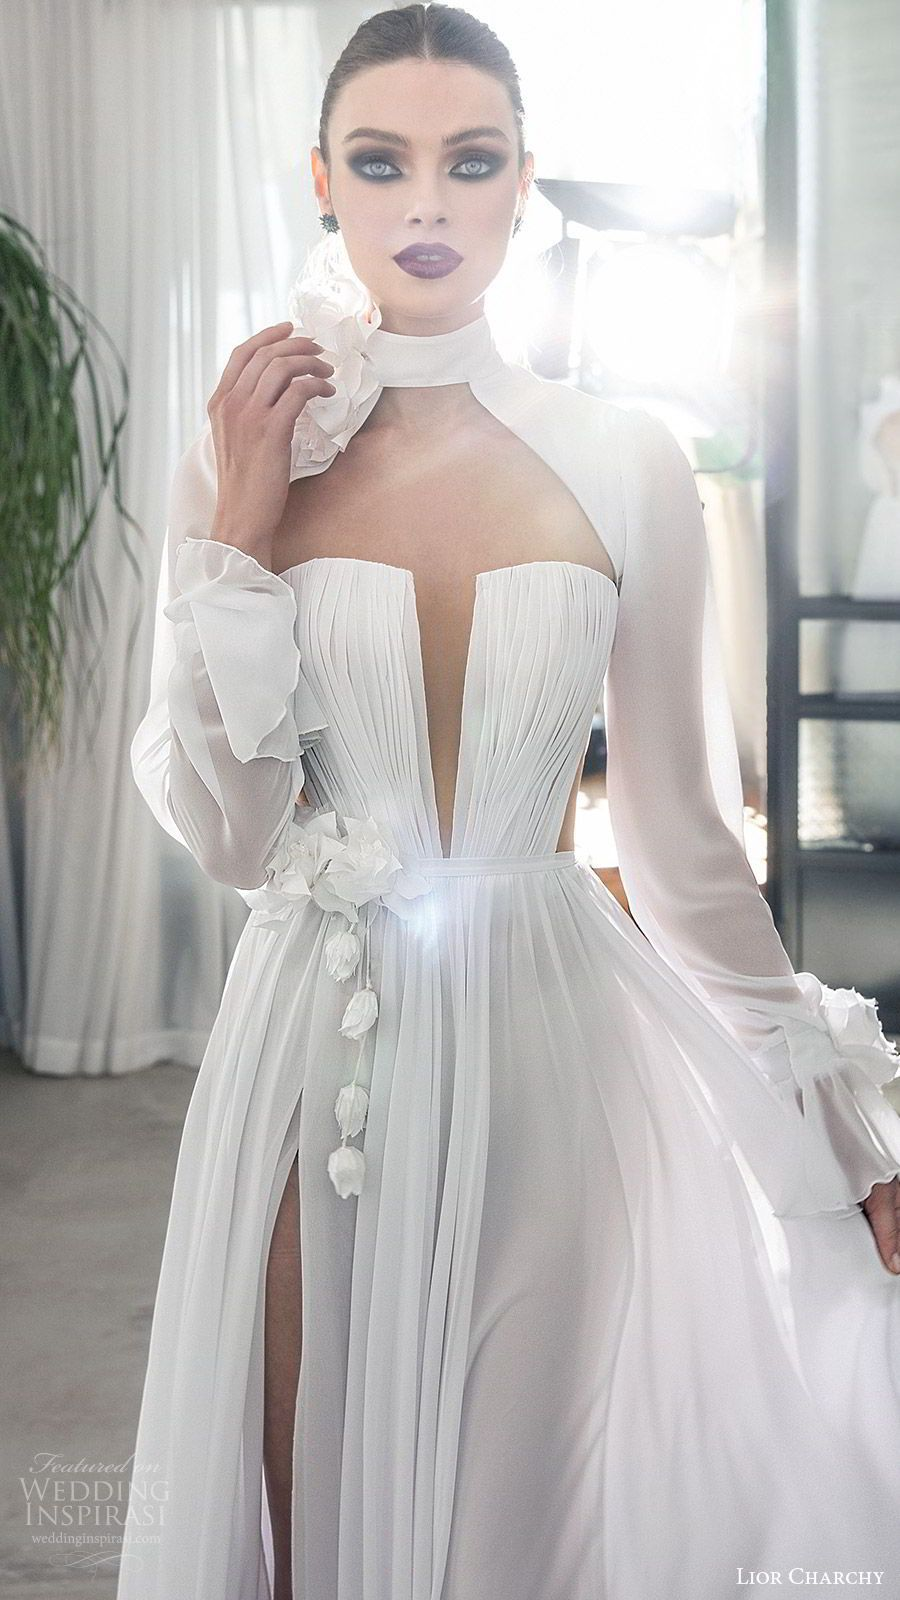 Gorgeous Lior Charchy Wedding Dresses — You Can Get Your Hands On Now | Wedding Inspirasi